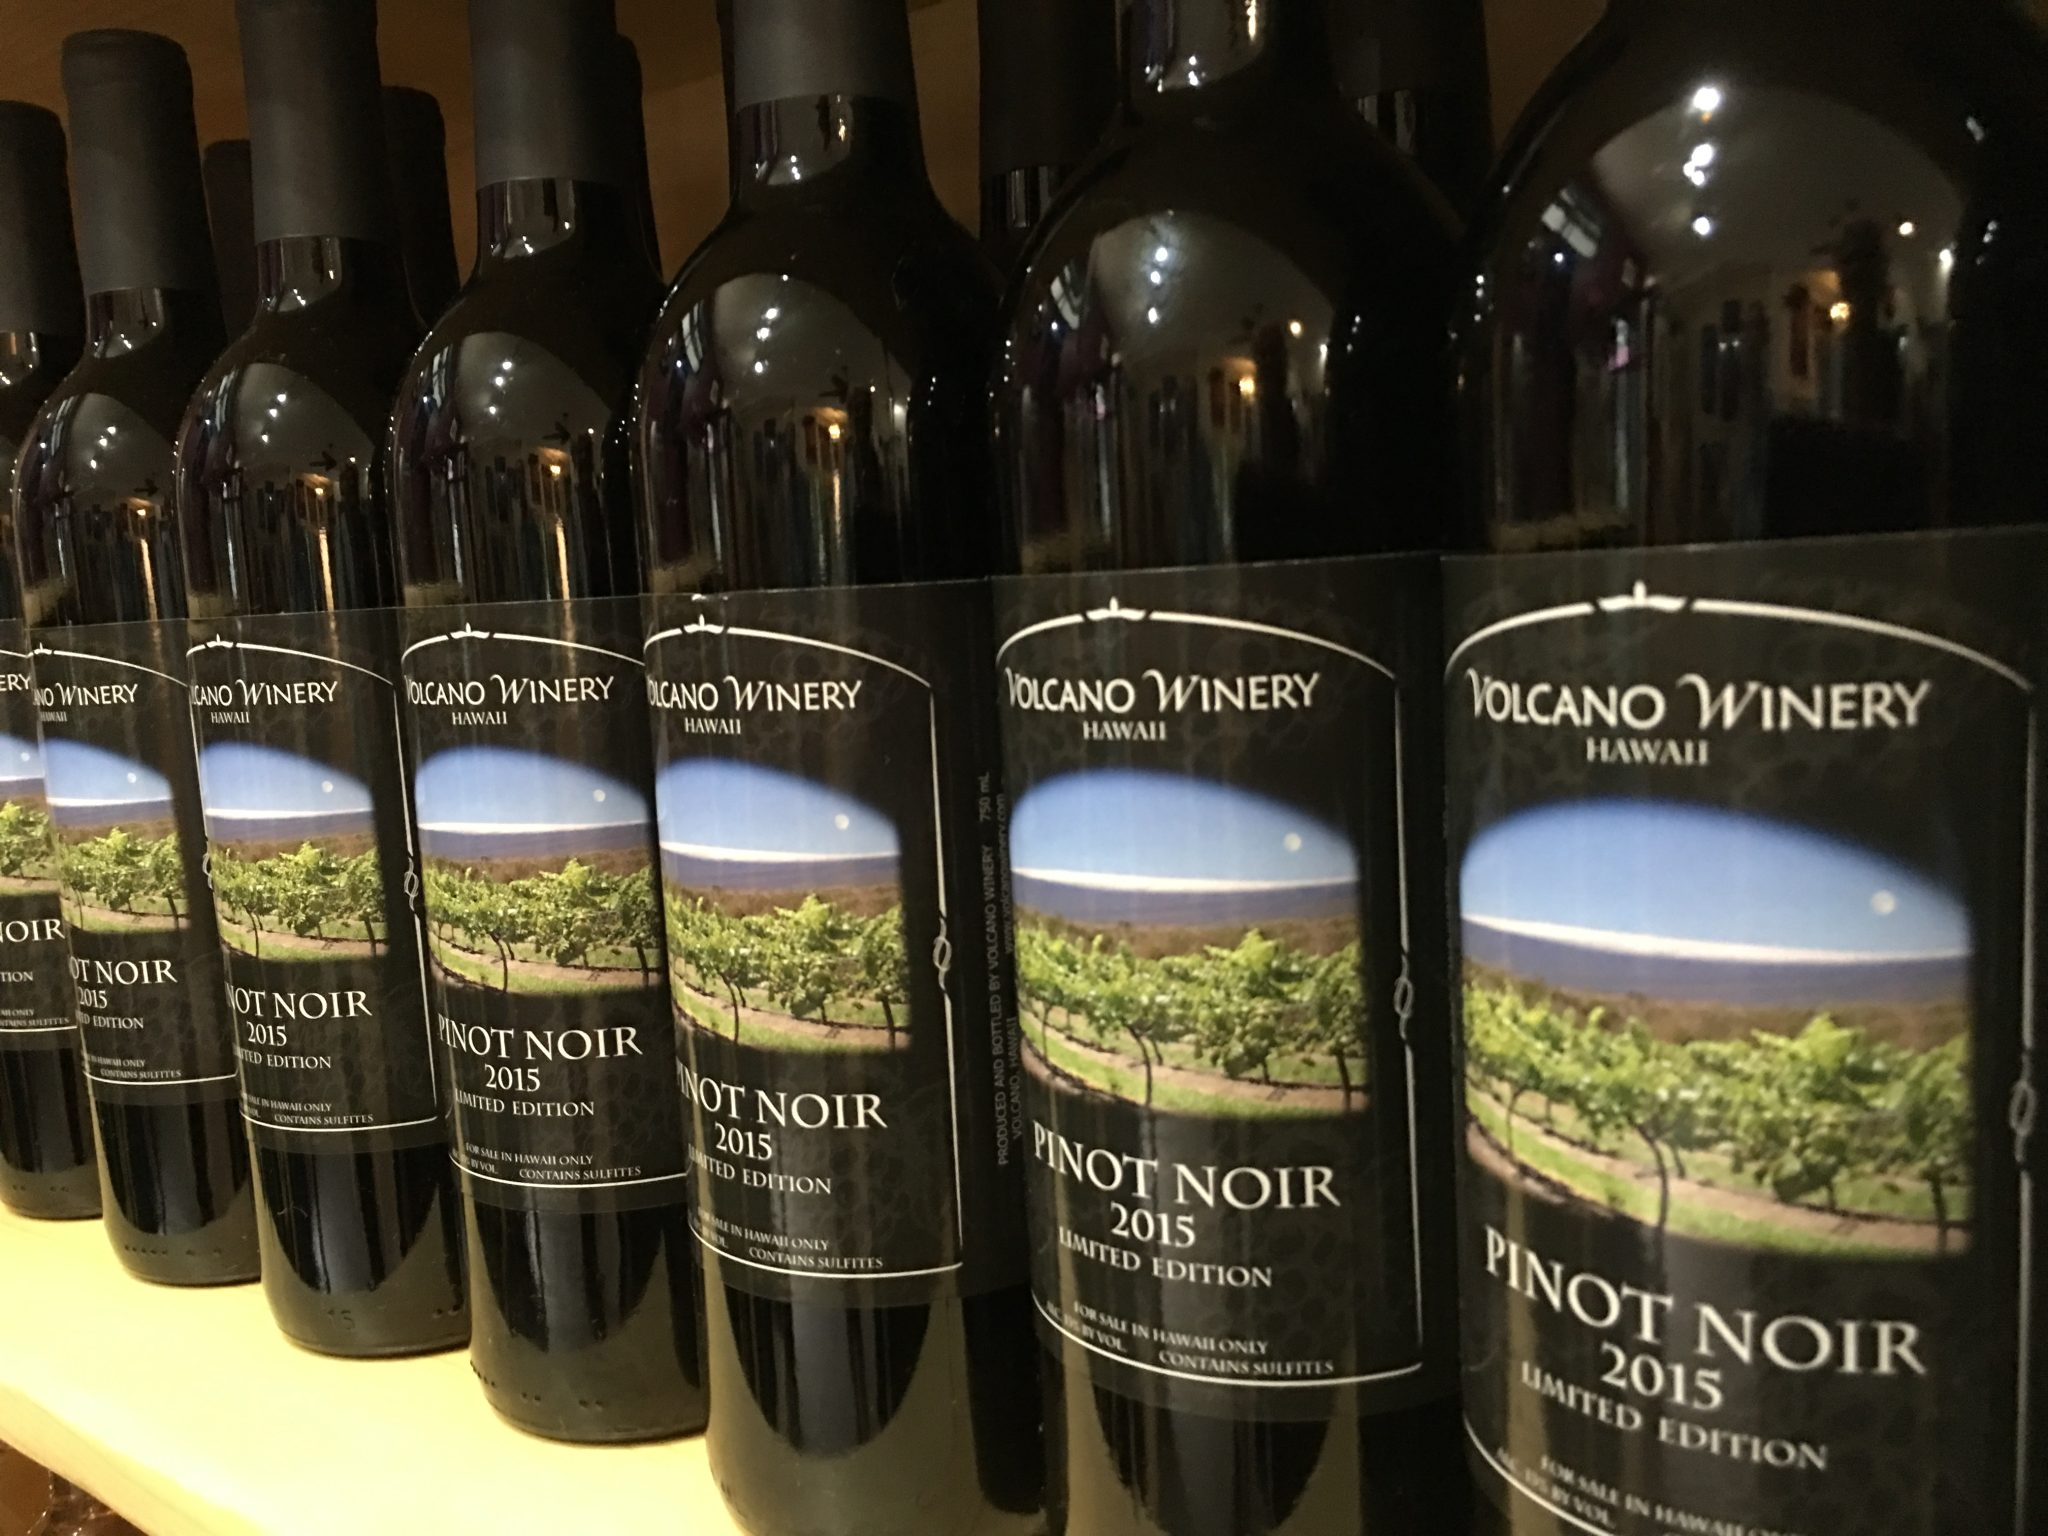 bottles of Volcano Winery Pinot Noir